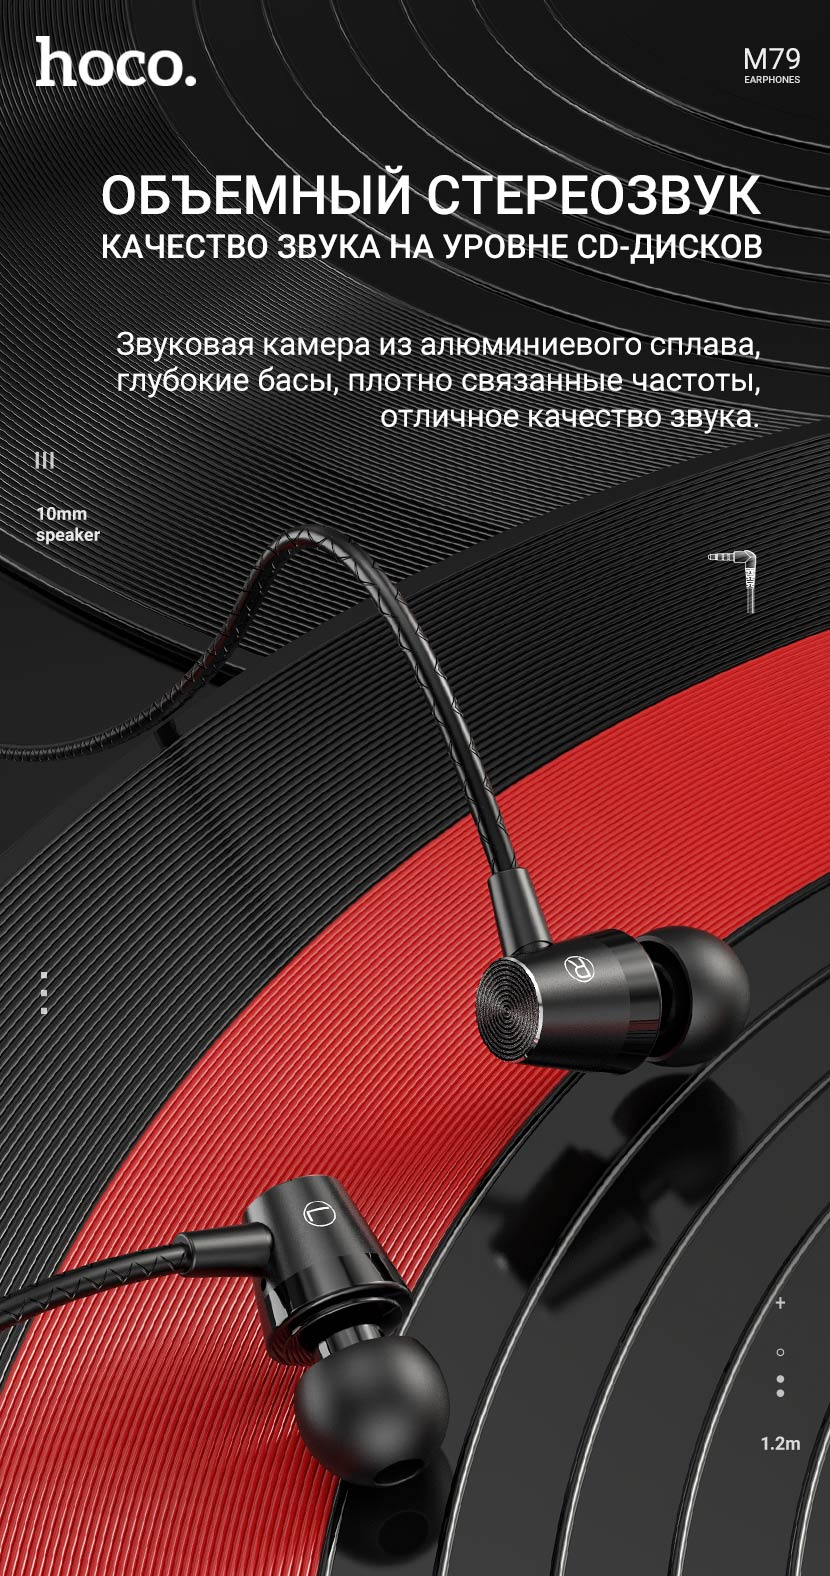 hoco news m79 cresta universal earphones with microphone sound quality ru